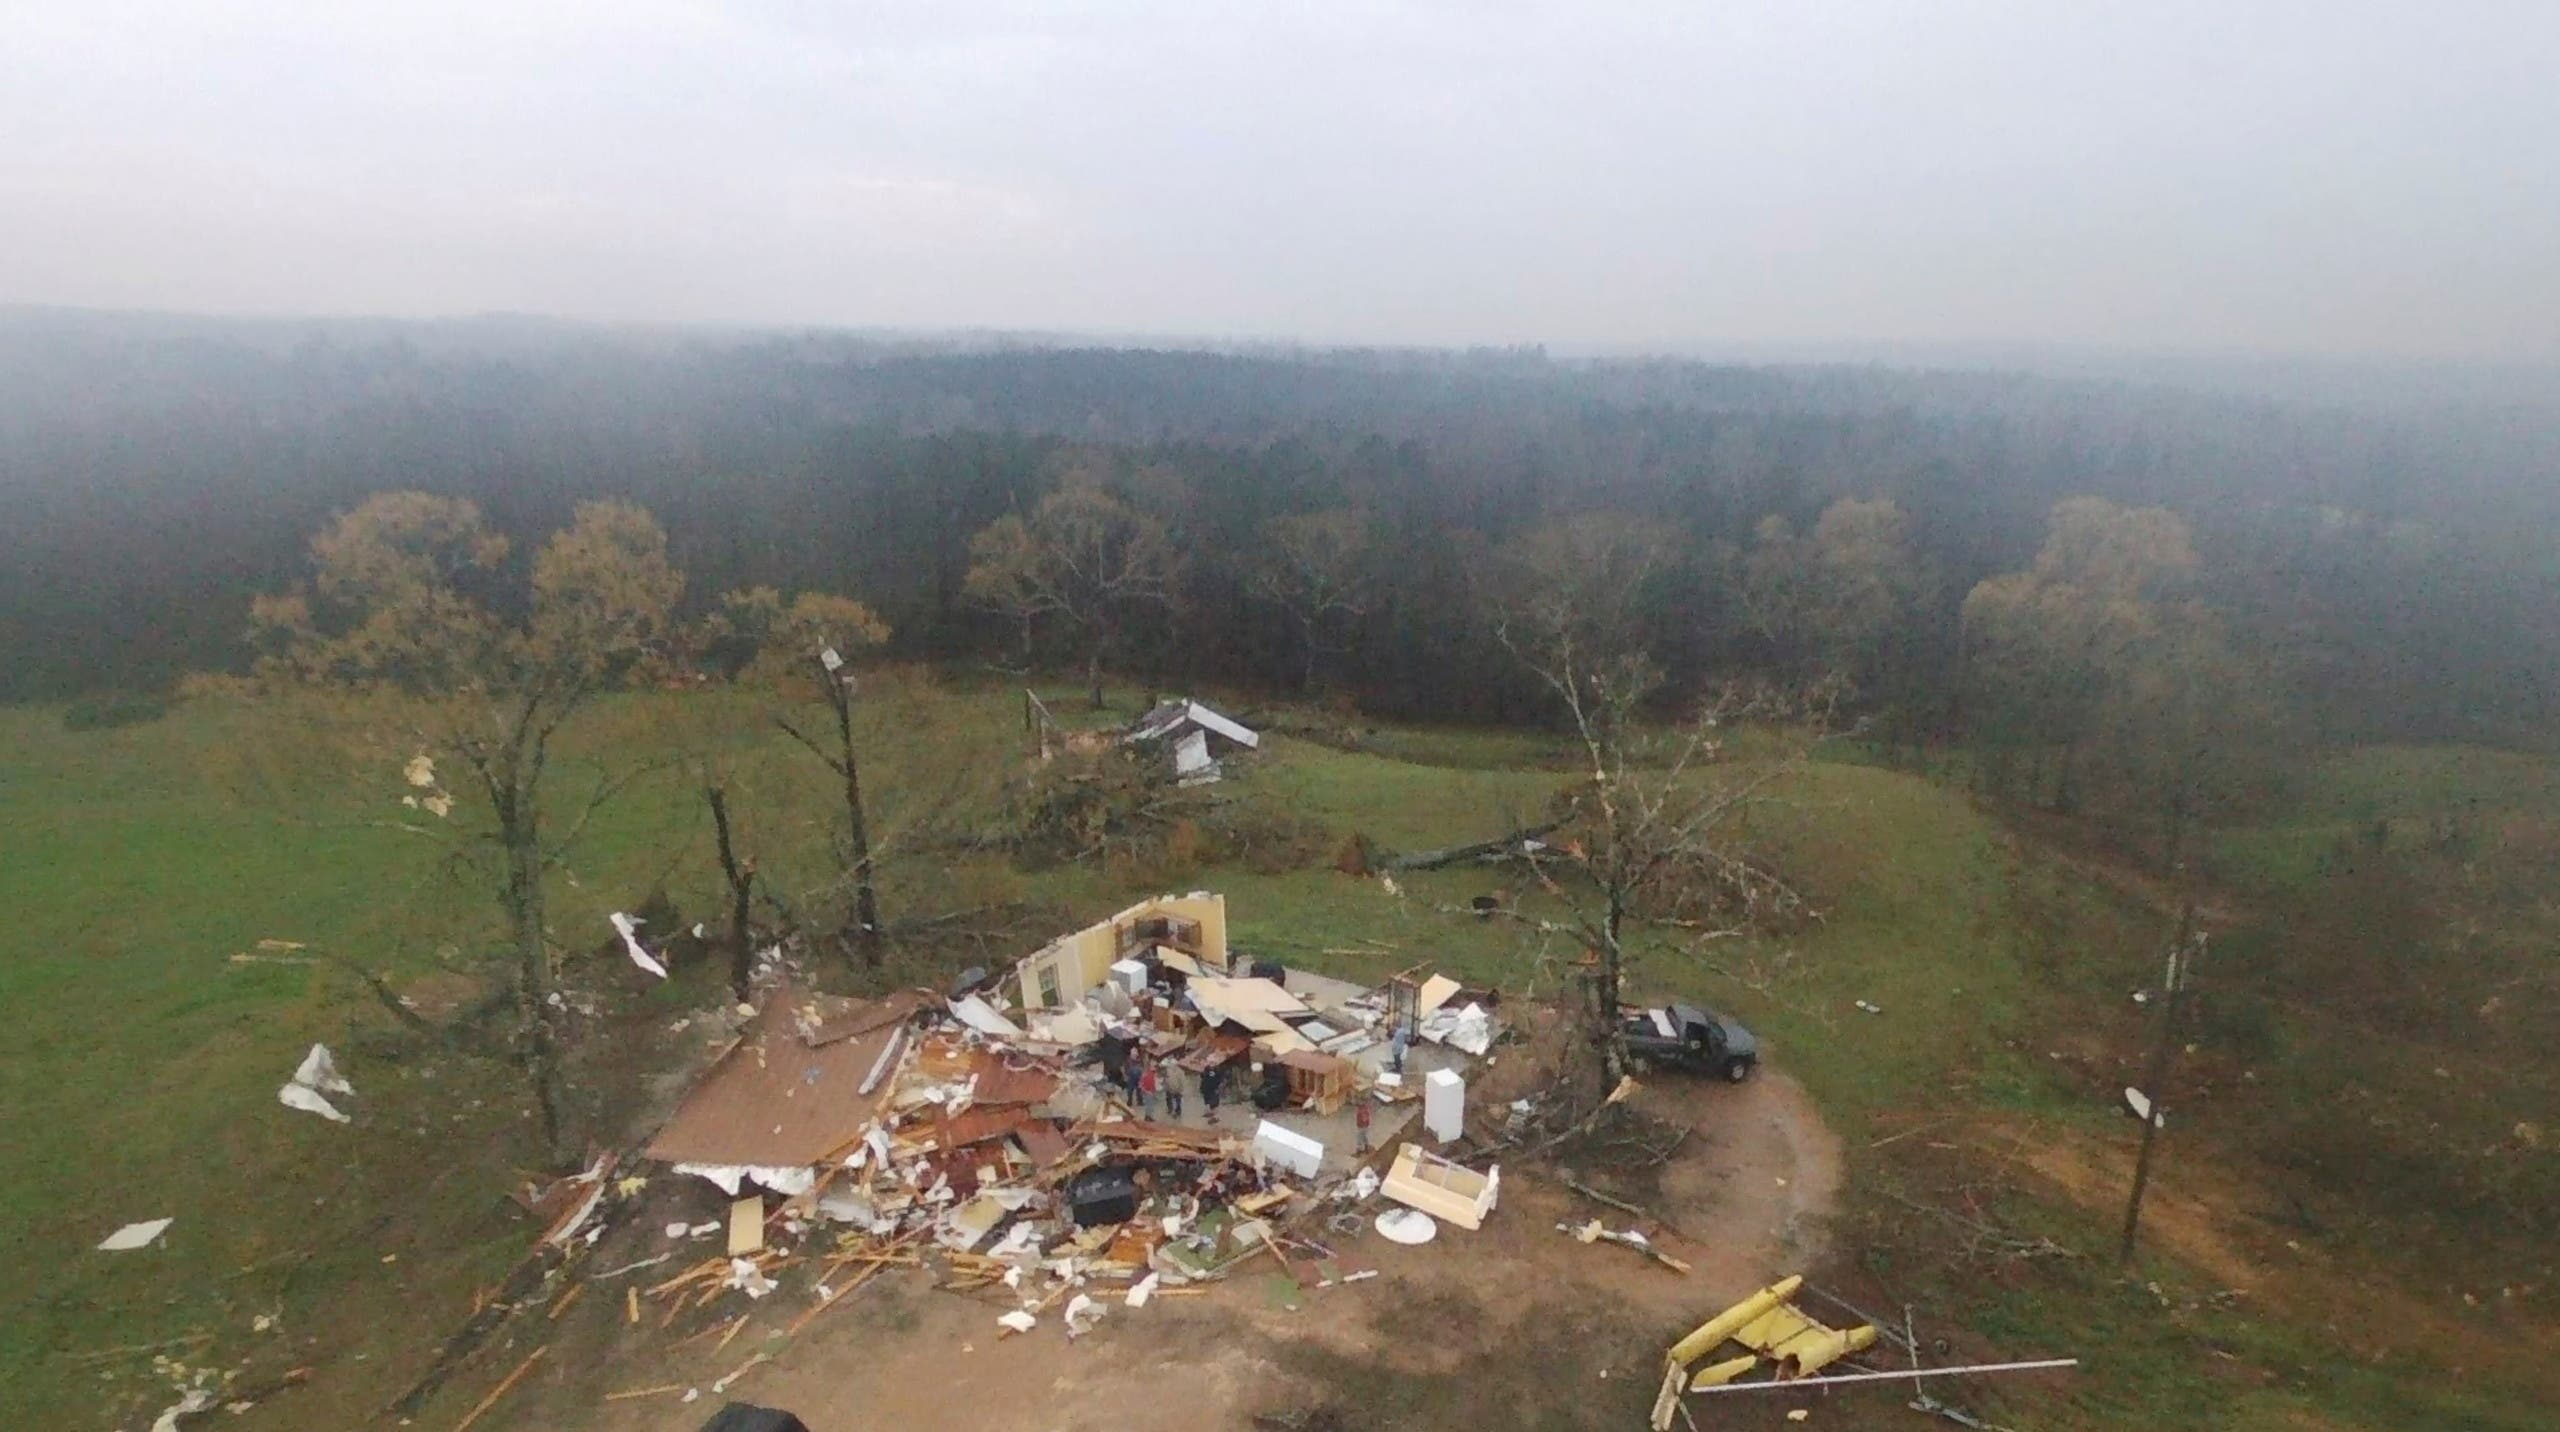 A destroyed house is seen in Chilton County, Alabama, U.S., March 17, 2021 in this still image obtained from a social media video. Video taken March 17, 2017. Video taken with a drone. (Brad Vance/via Reuters)